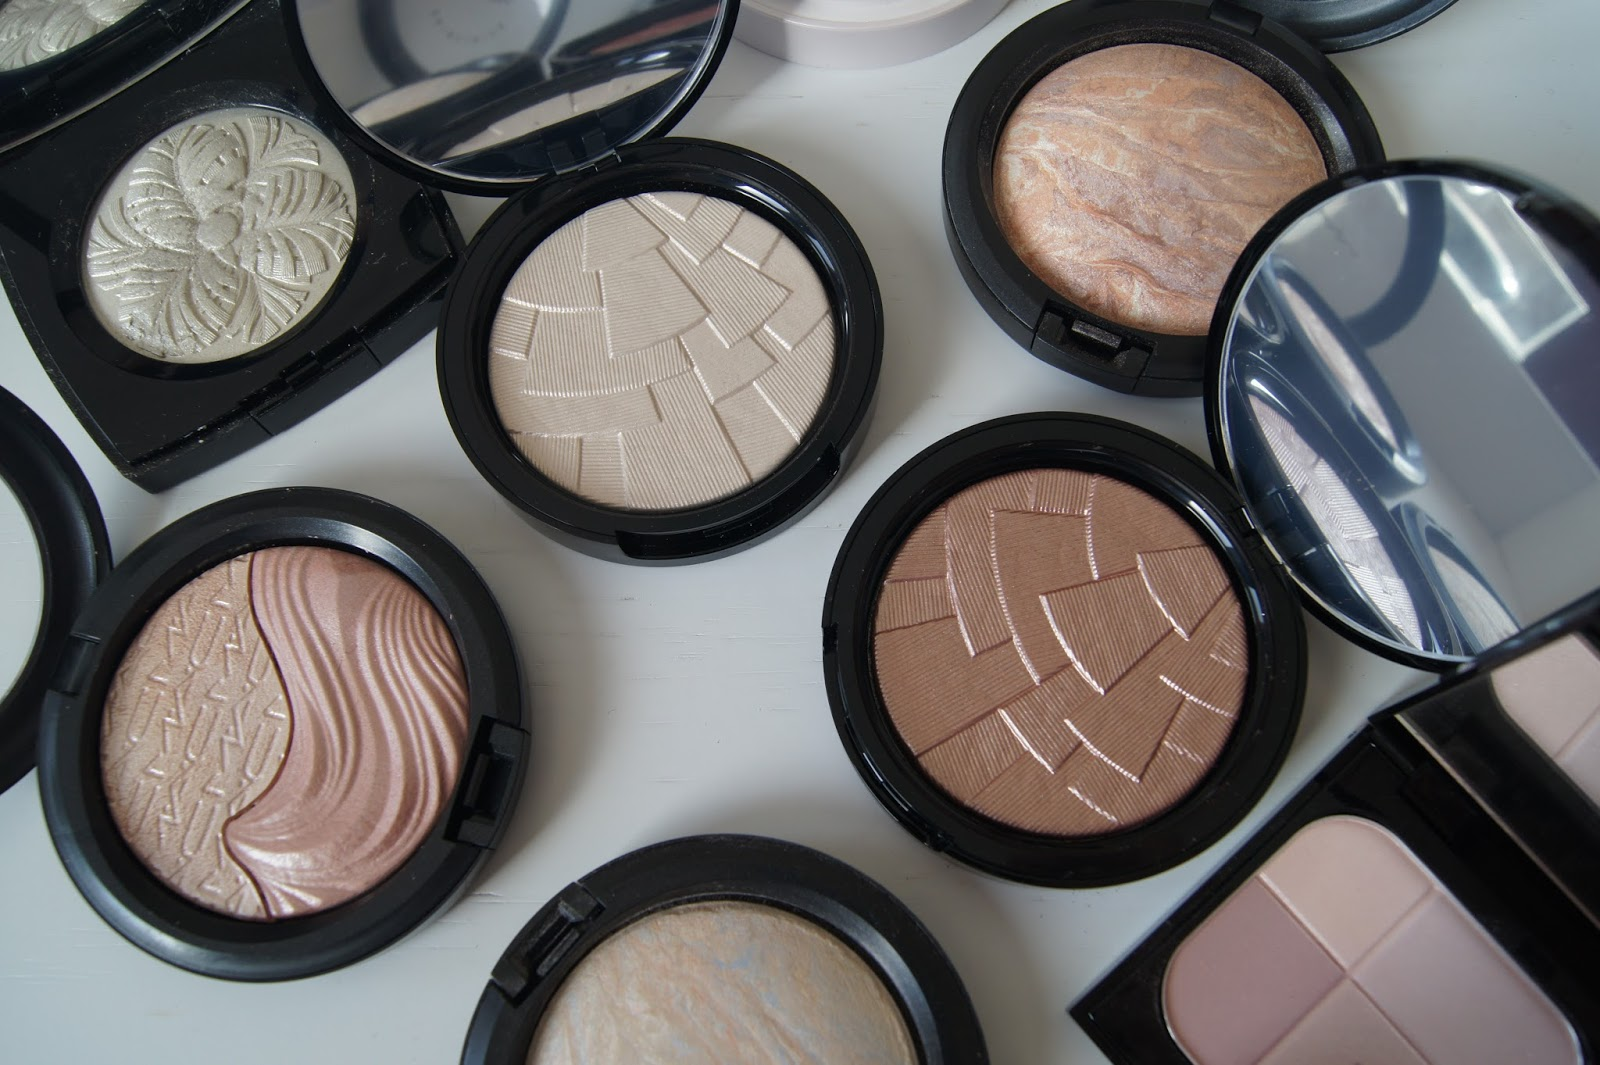 Anastasia Illuminators in Starlight and Riviera